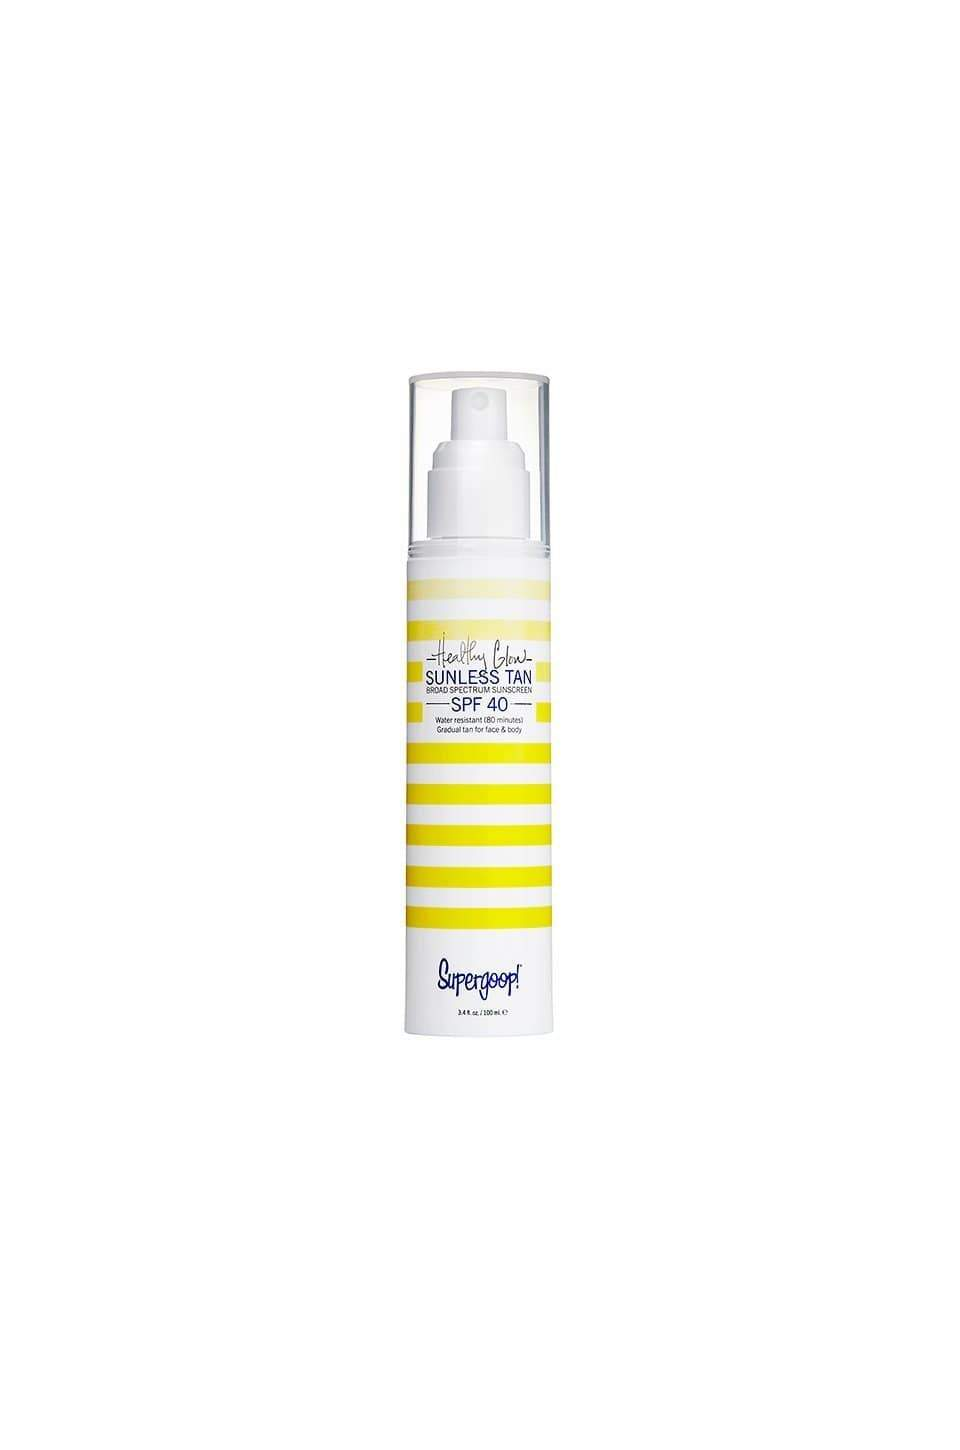 SUPERGOOP! tanning SUPERGOOP! Healthy glow sunless tan broad spectrum sunscreen SPF 40, 101ml